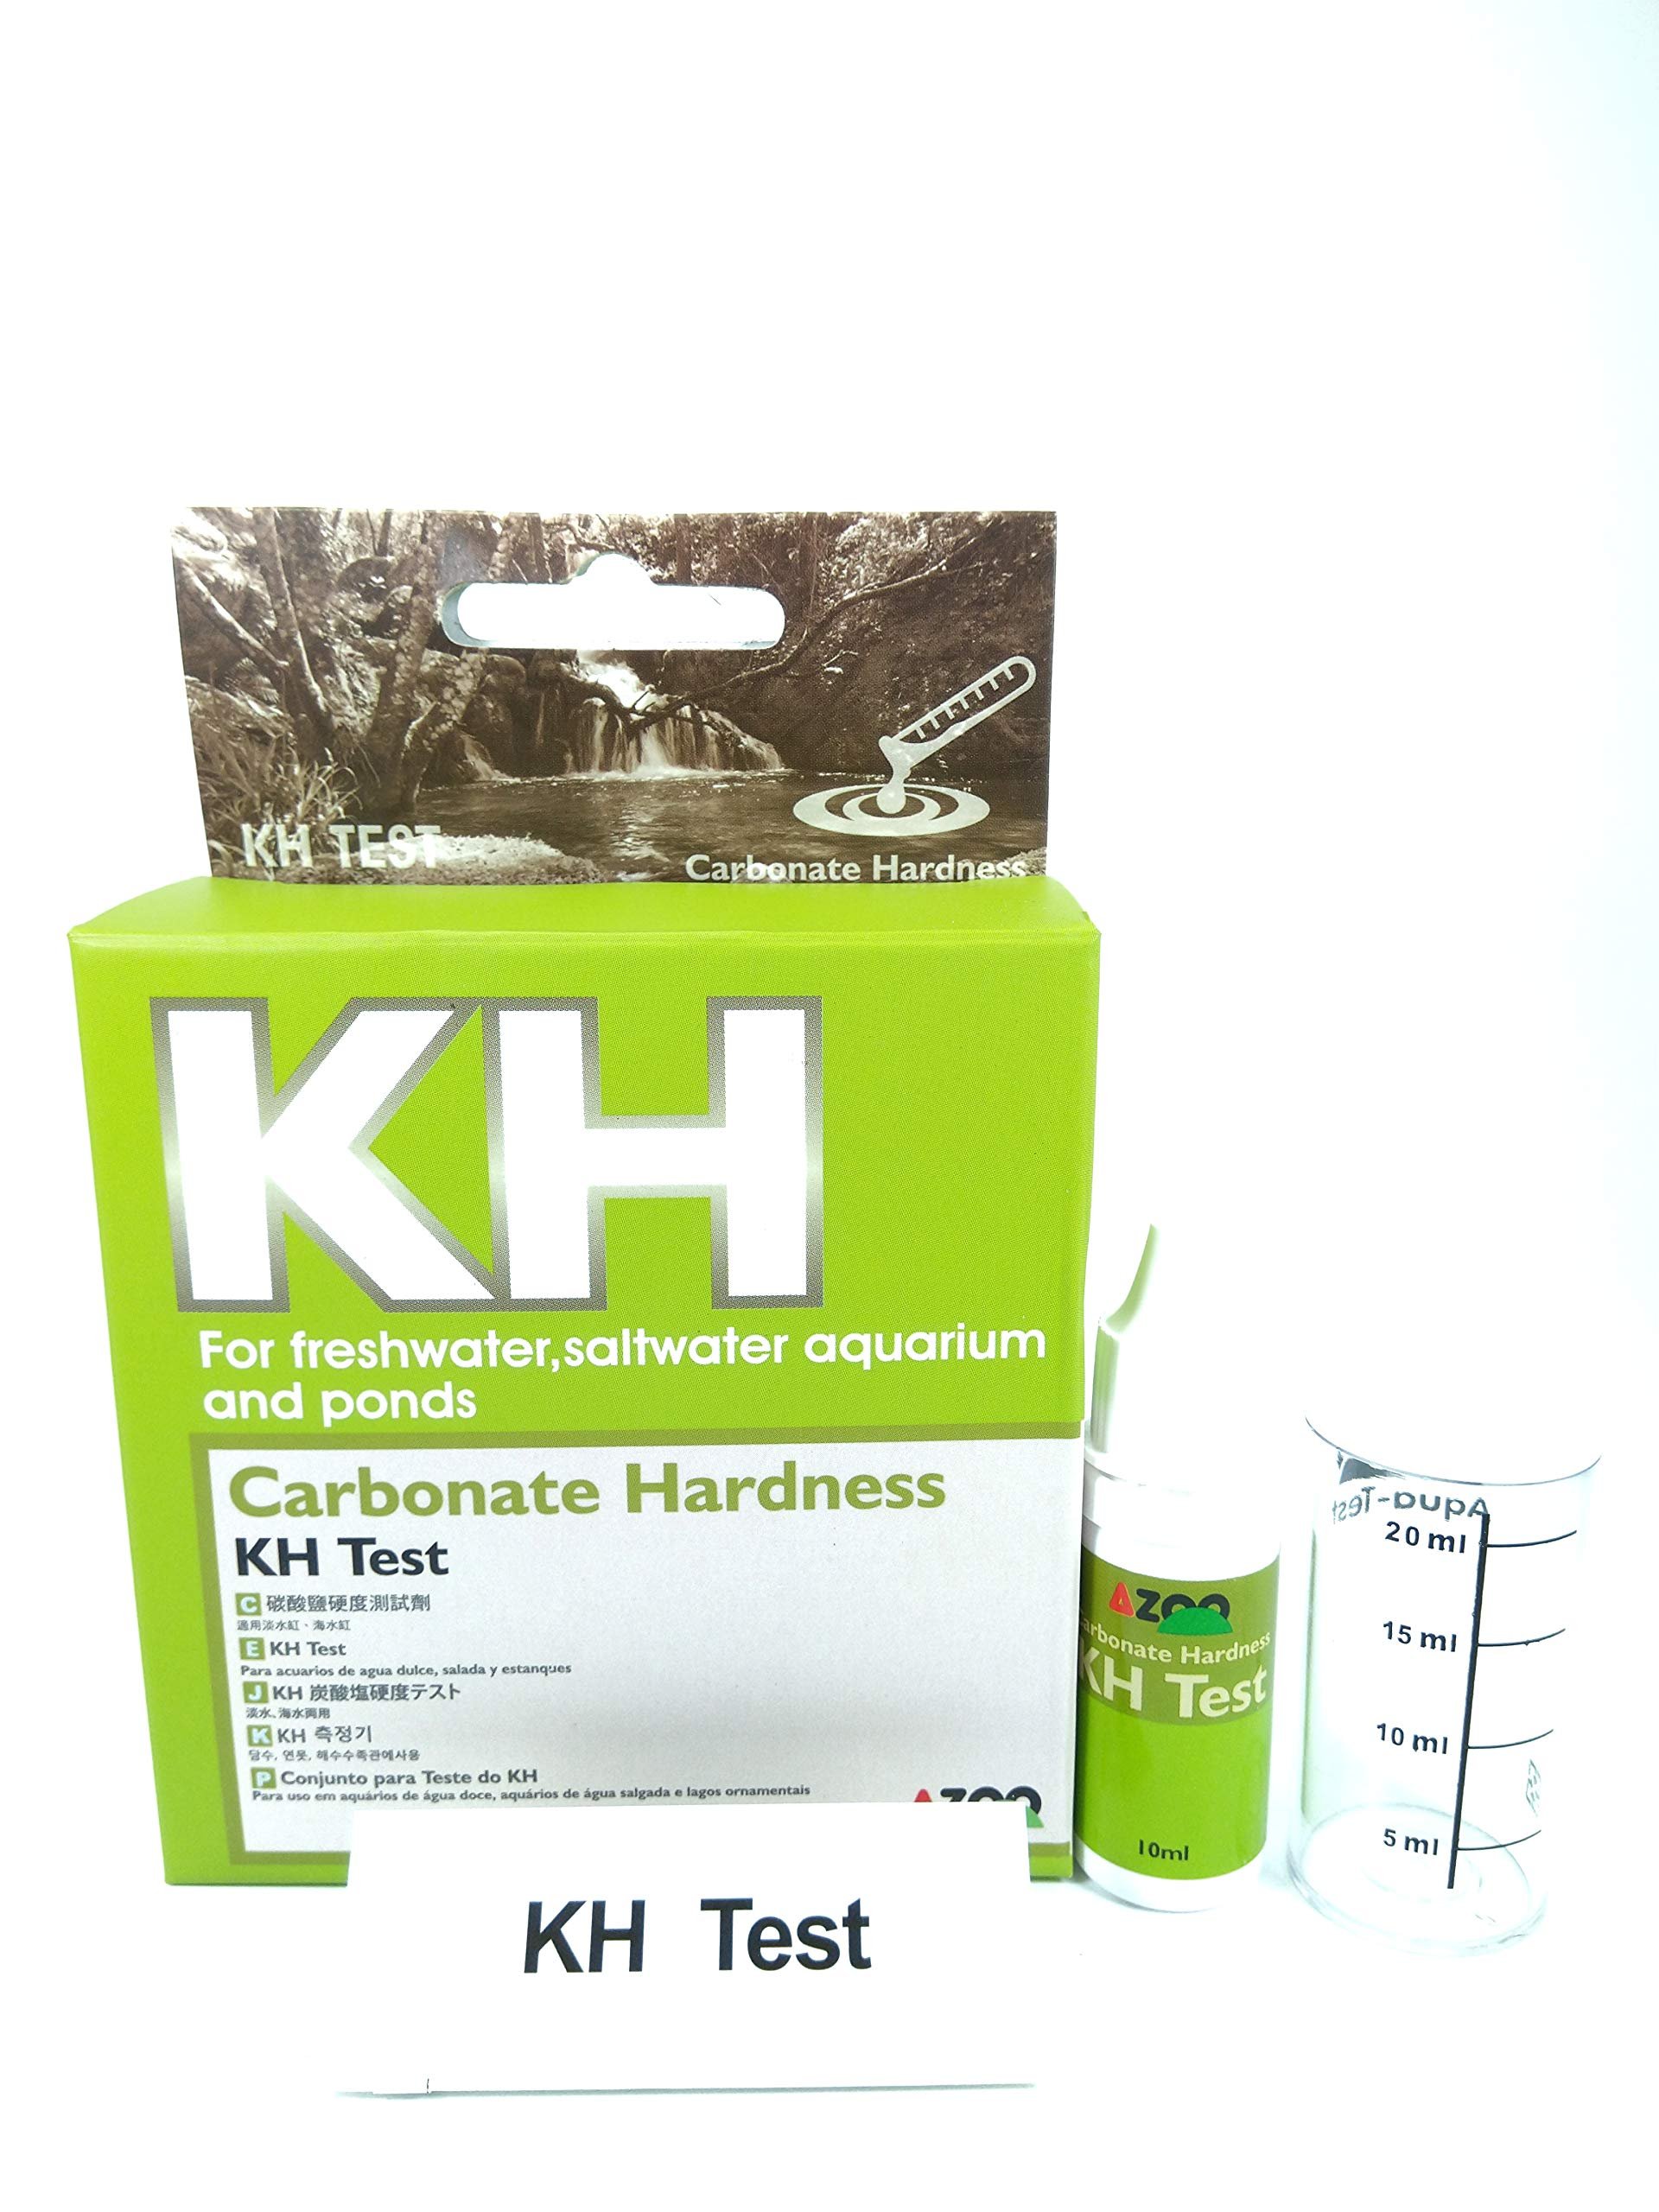 Azoo KH Test Carbonate Hardness for Freshwater, Saltwater Aquarium and Ponds by Azoo